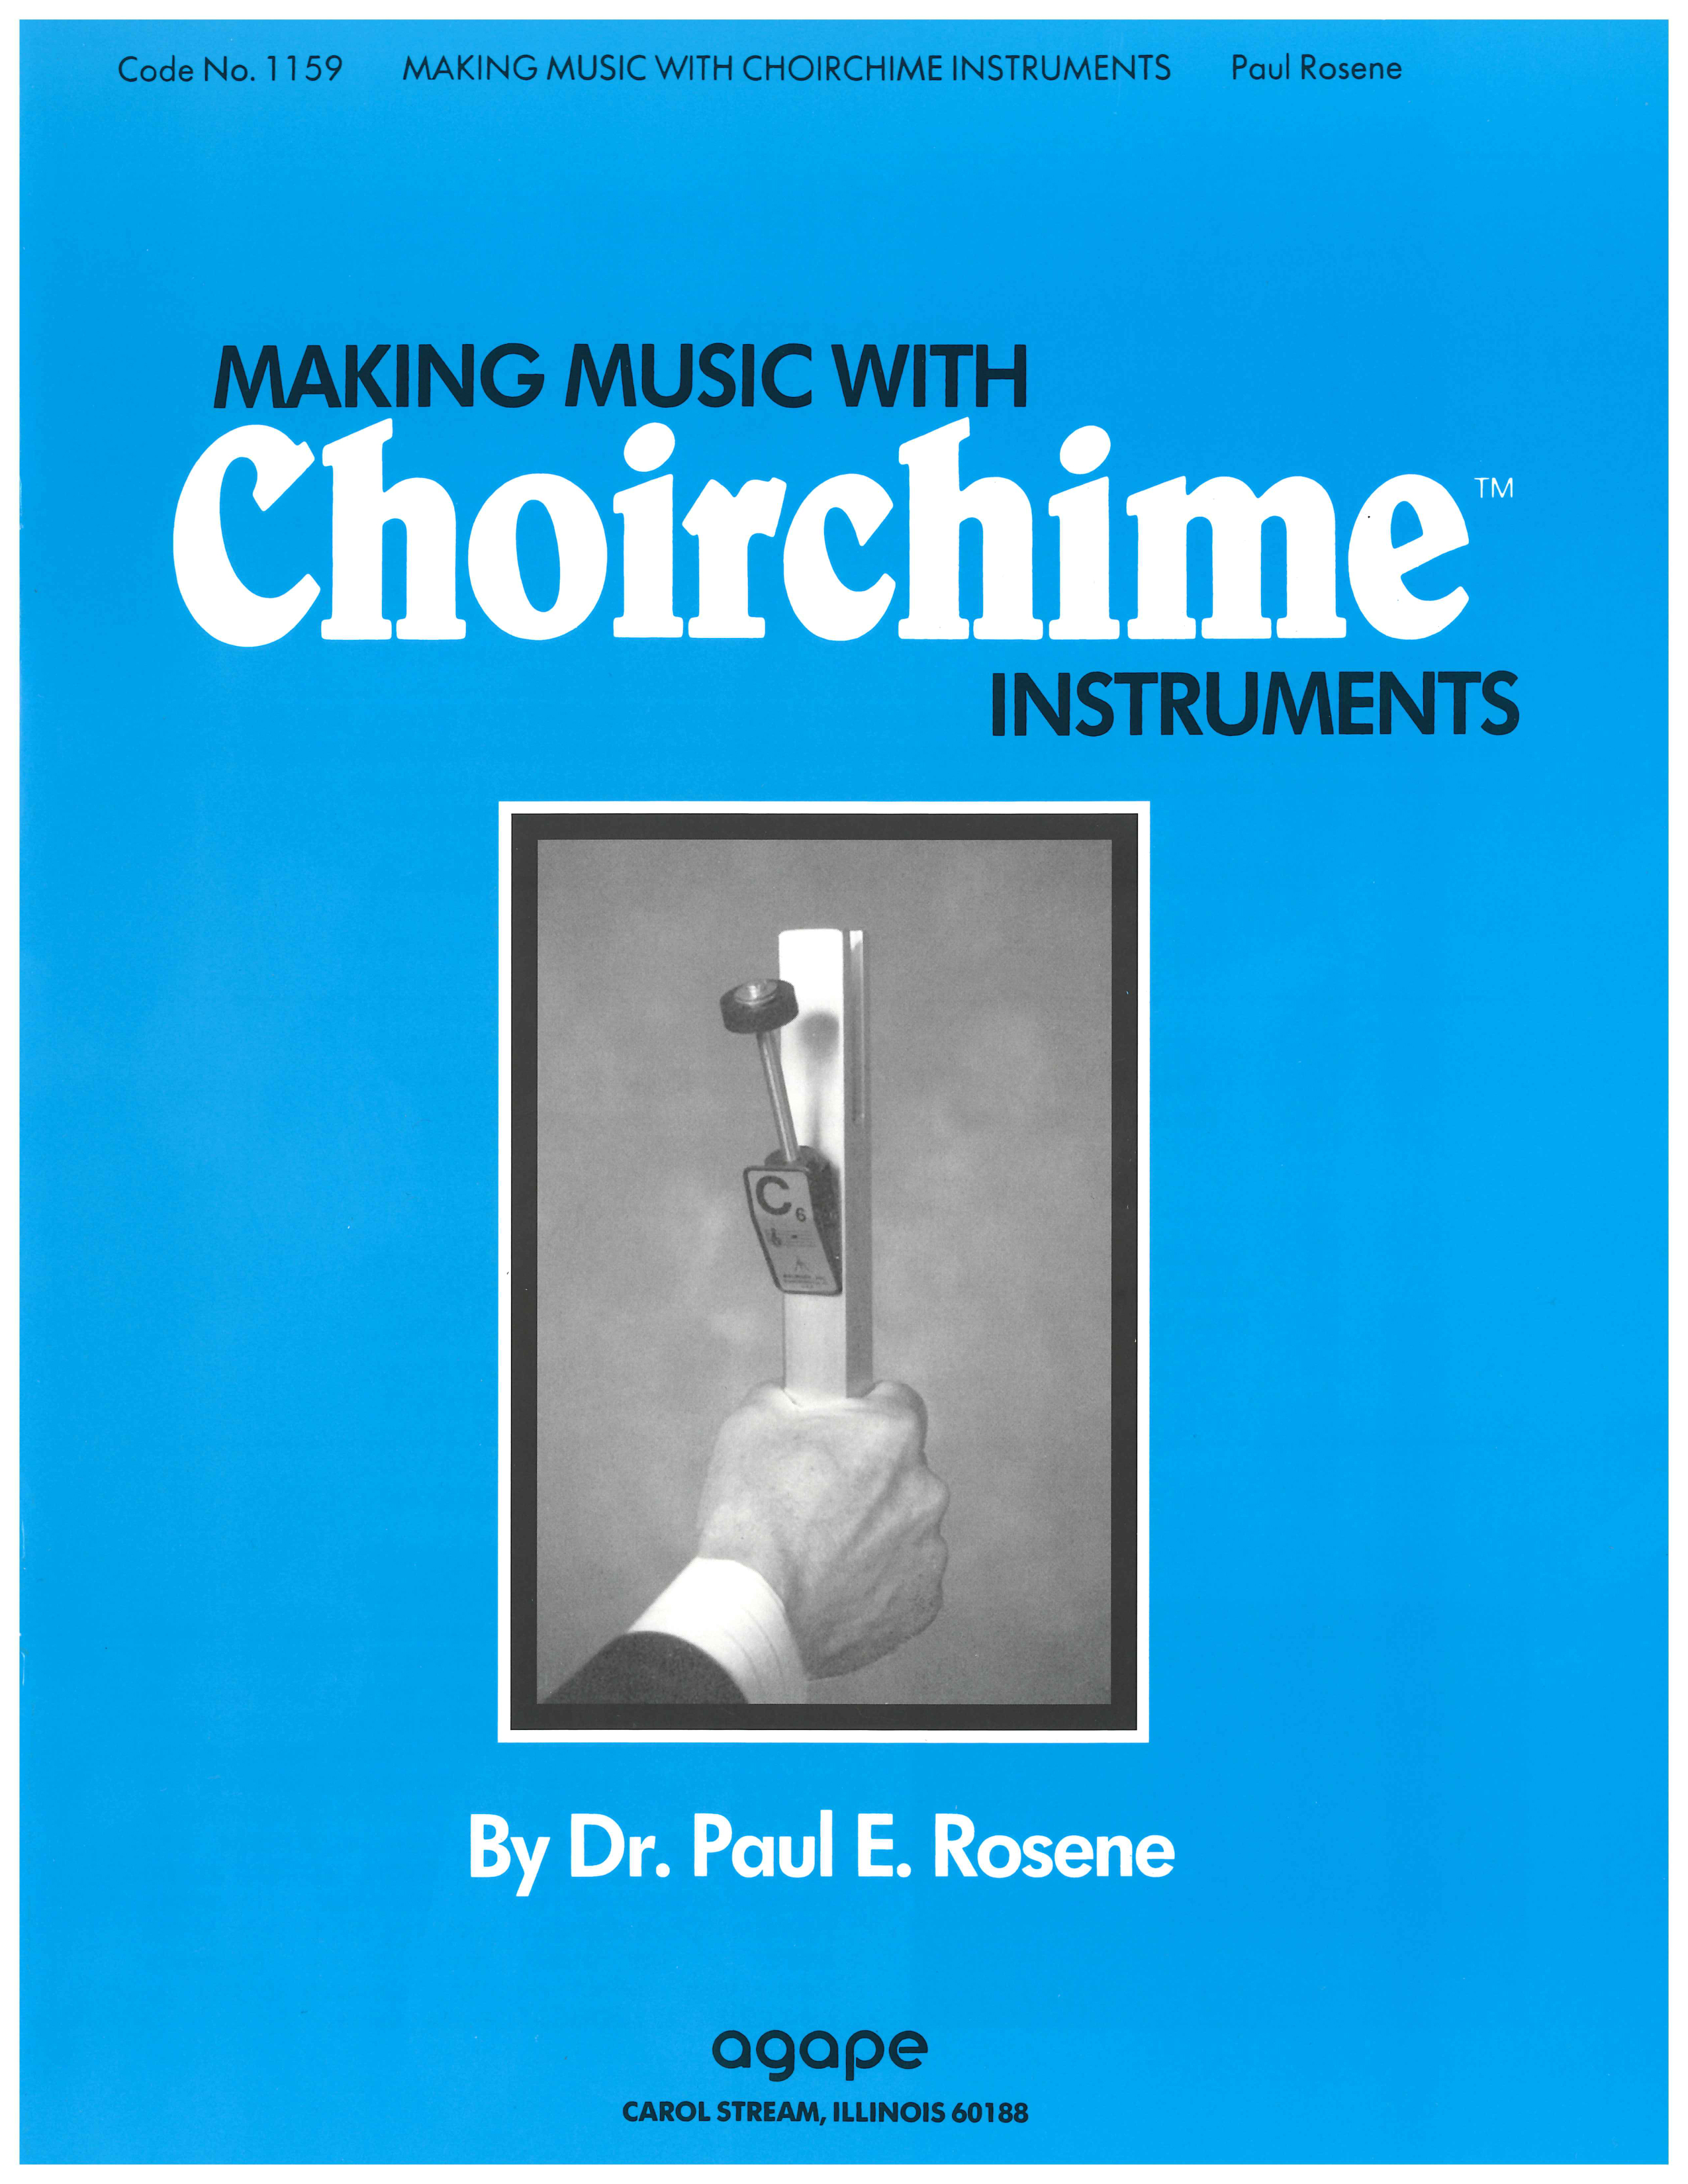 Making Music with Choirchime Instruments Cover Image